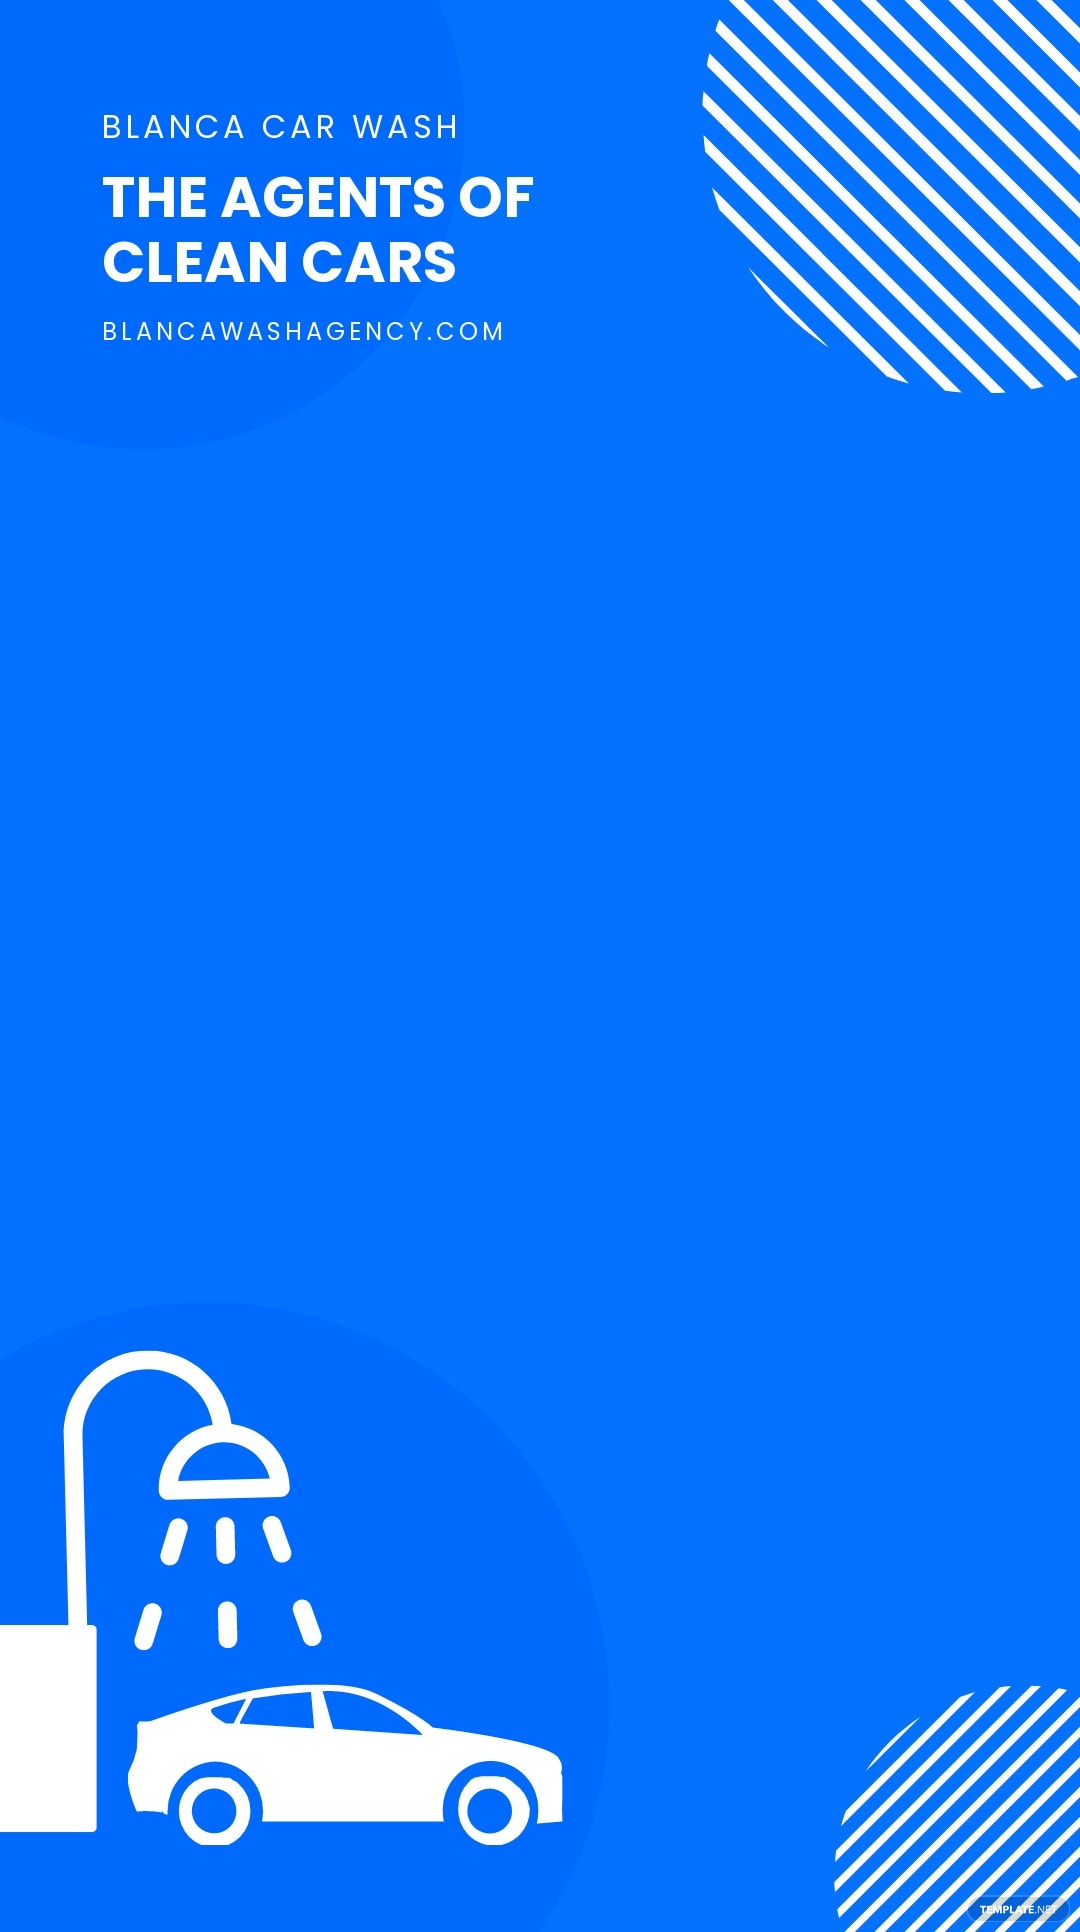 Car Wash Agency Snapchat Geofilter Template.jpe